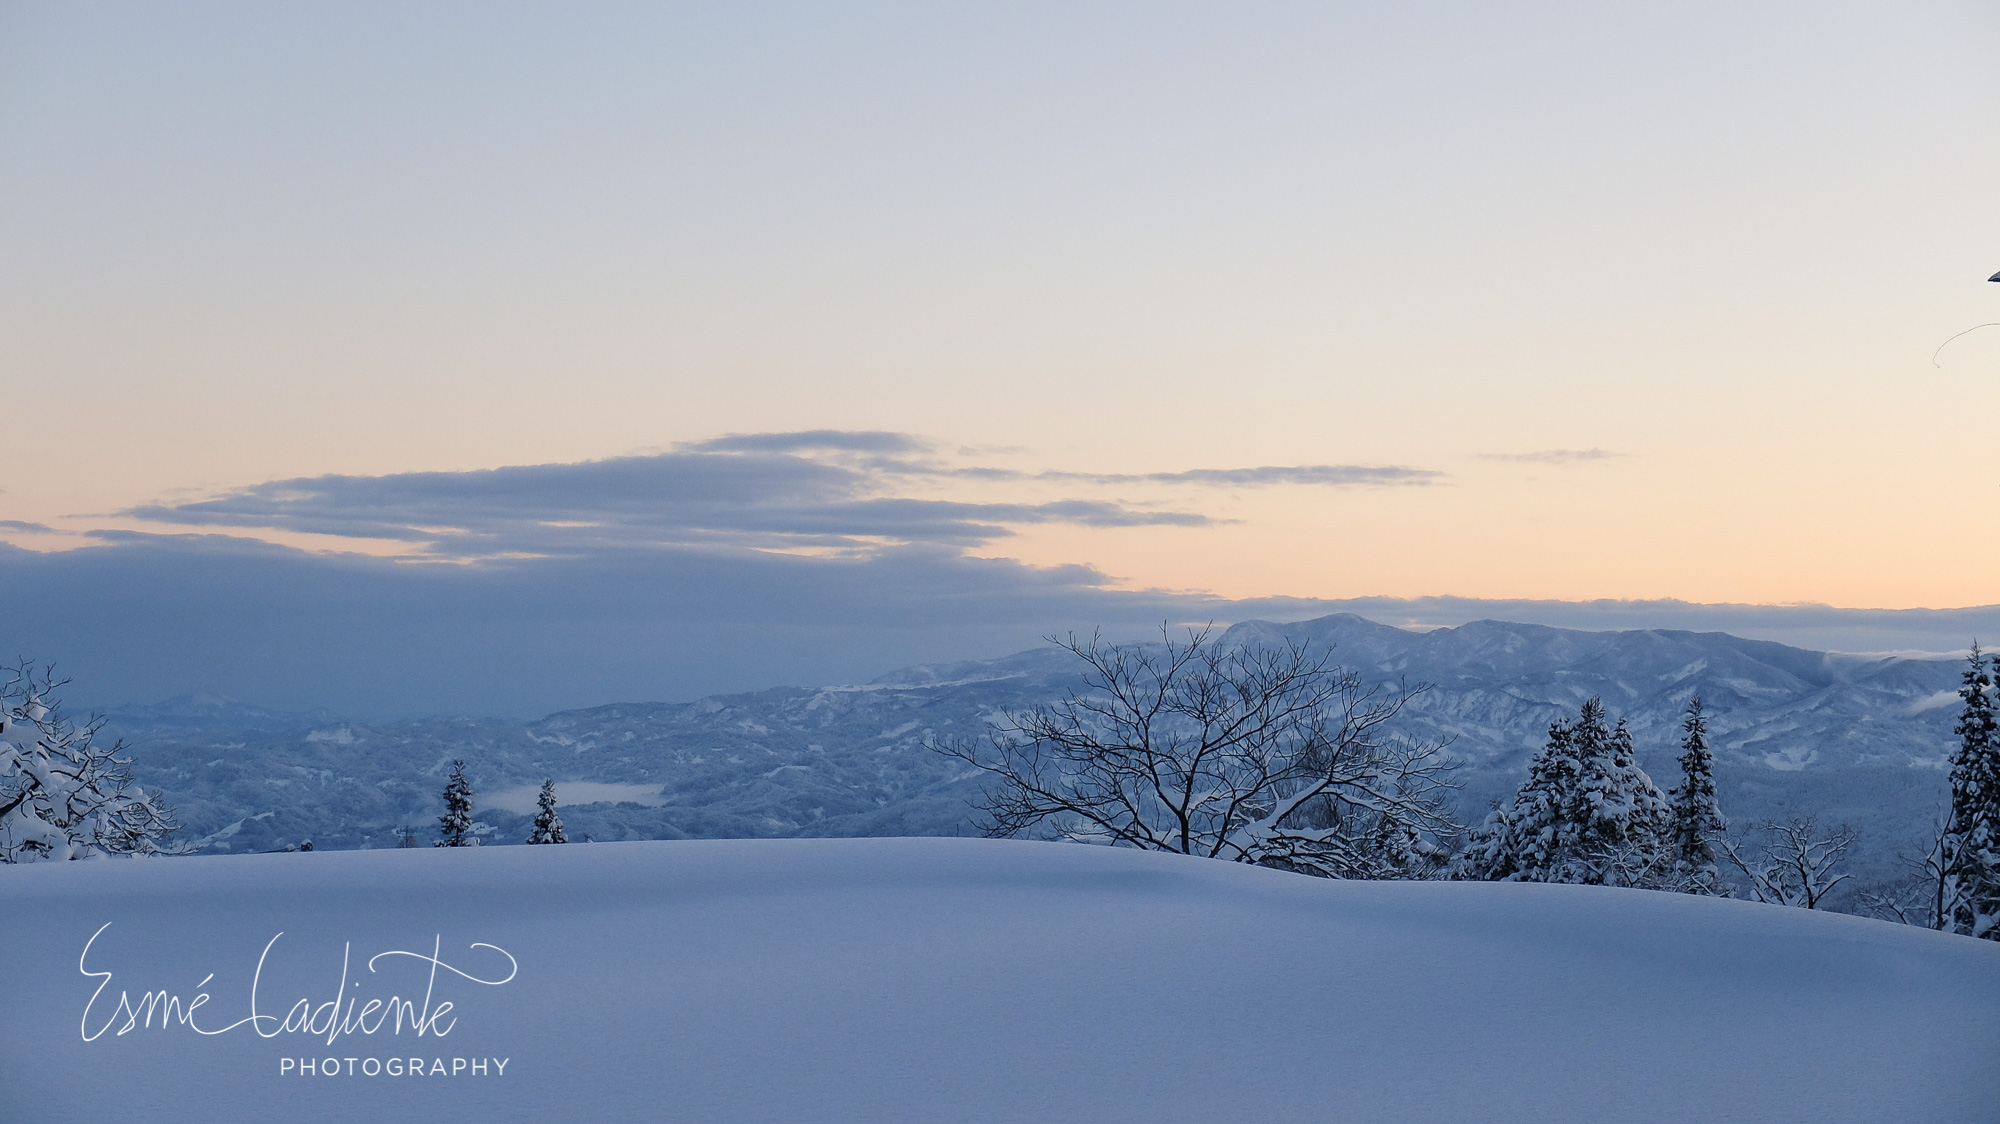 Dawn in Myoko Kogen with the Sea of Japan in the distance.